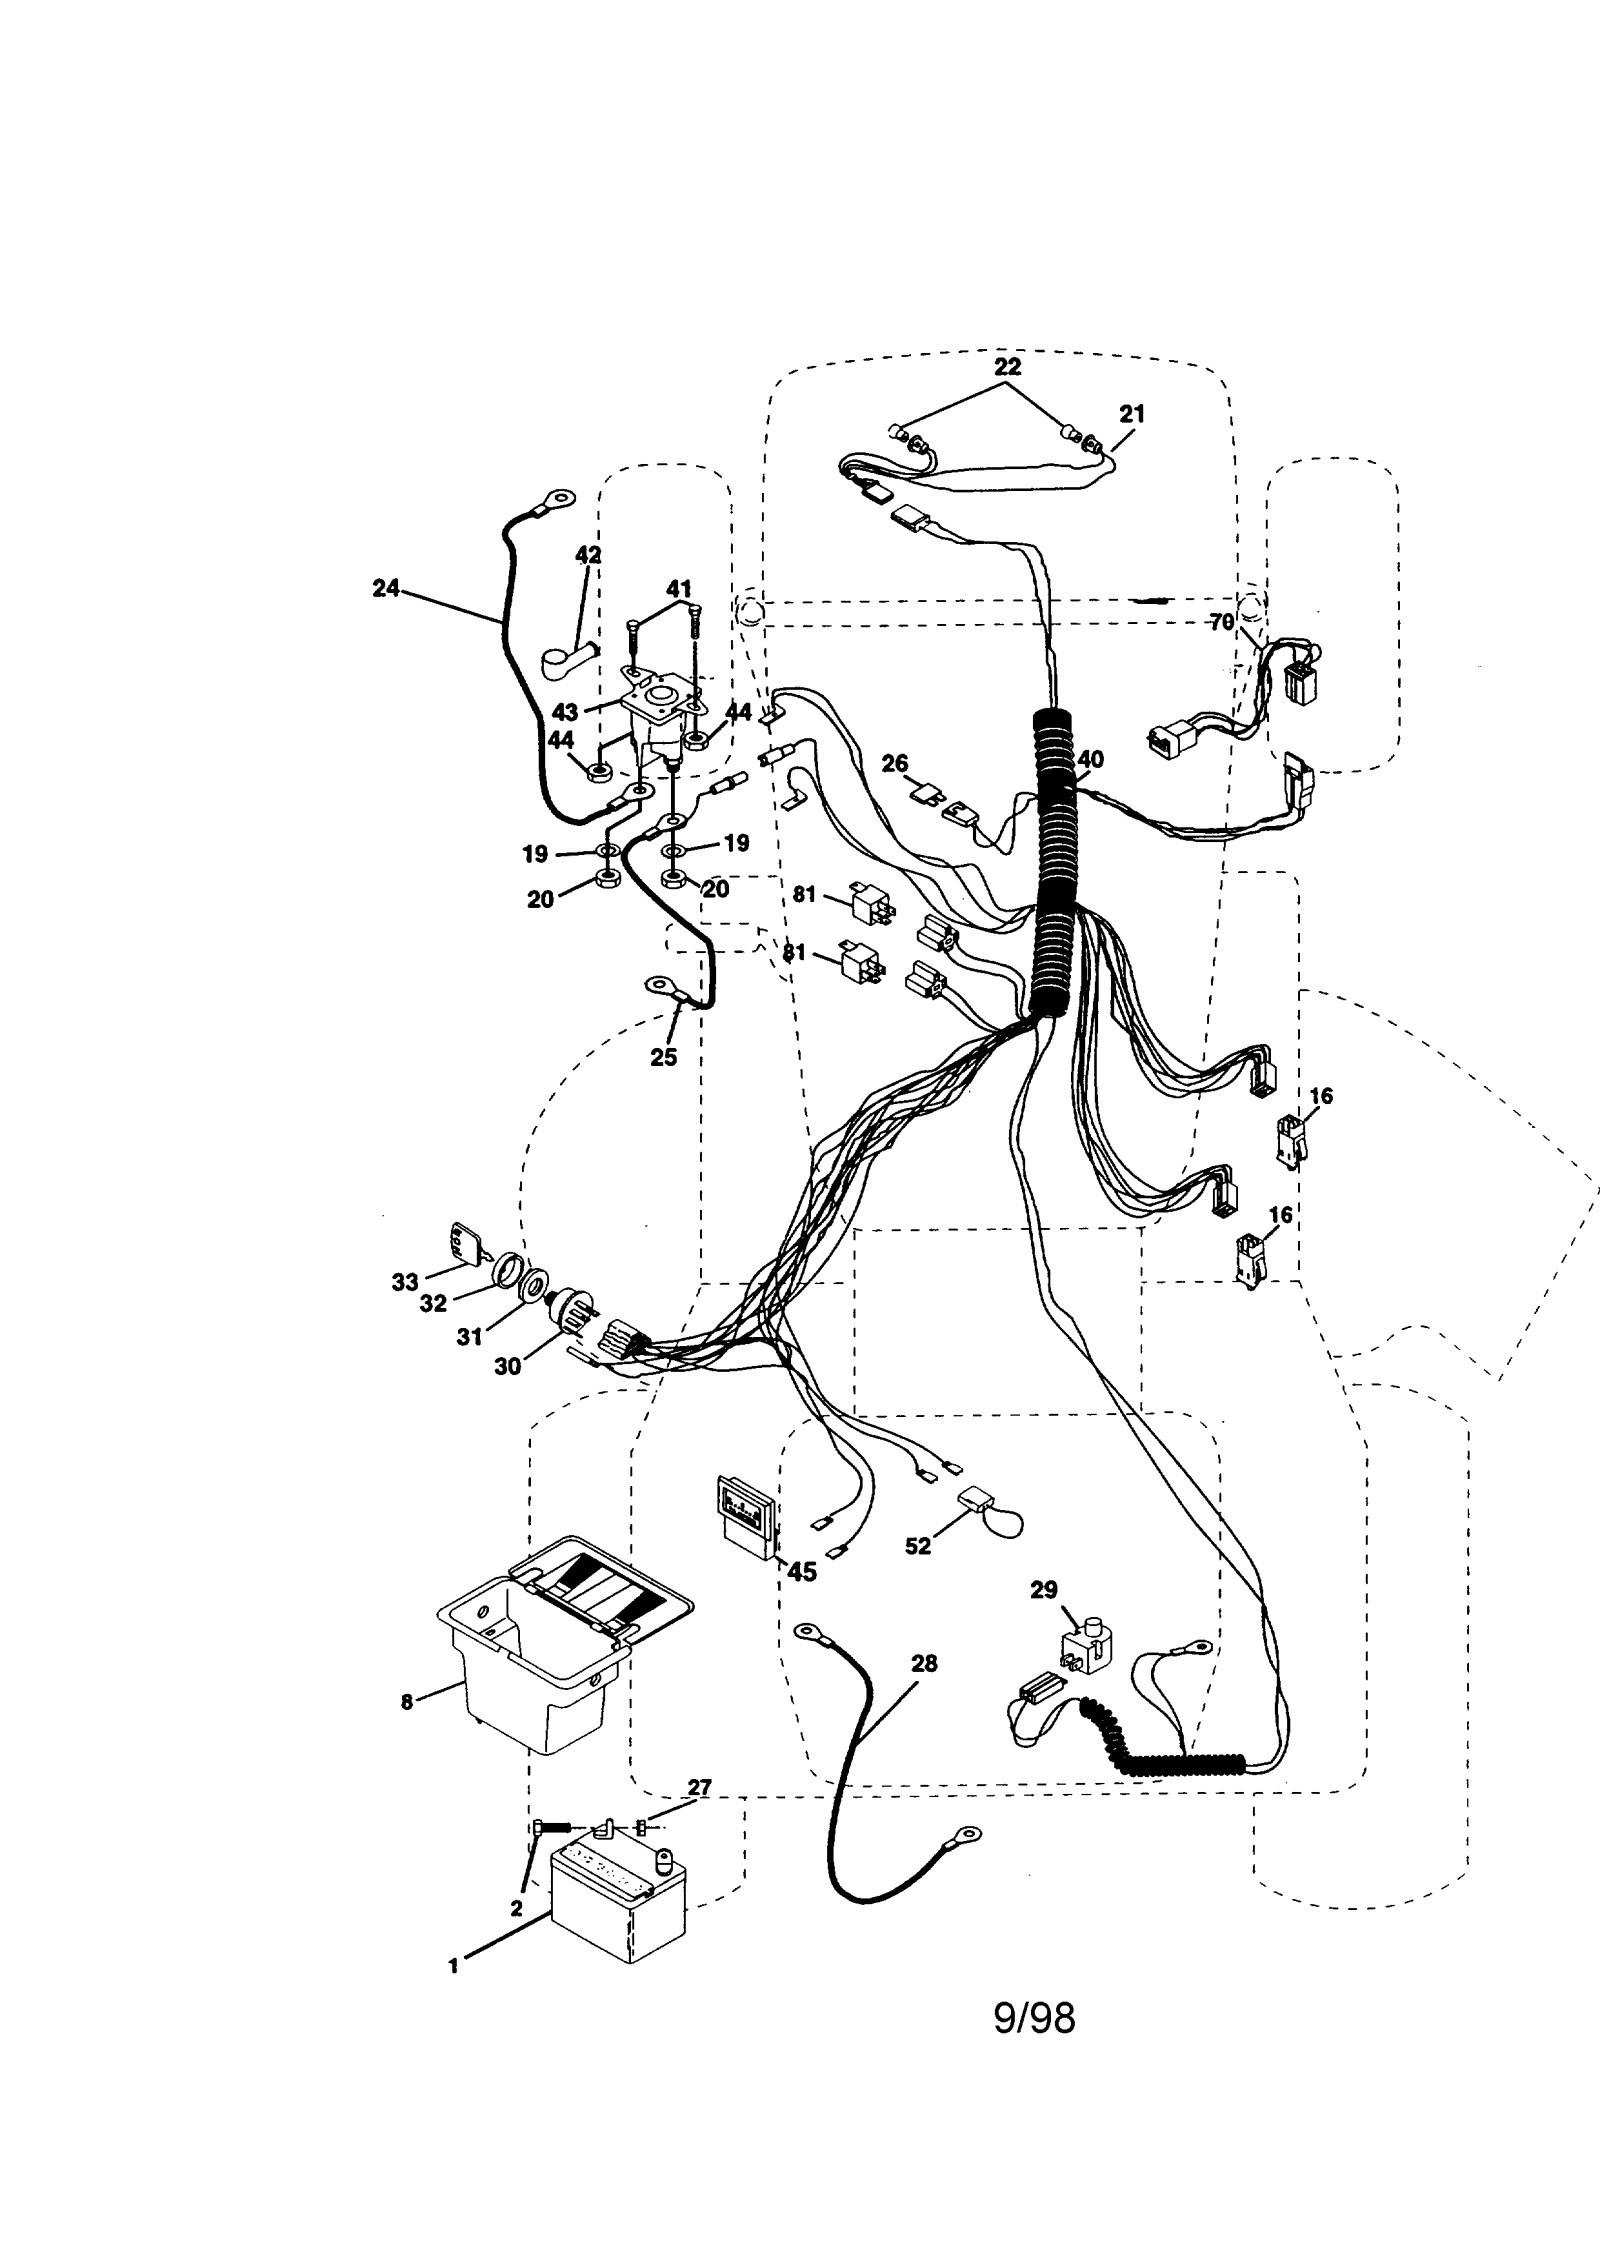 D16z6 Engine Harness Diagram Kohler Engine Wiring Harness Chromatex Of D16z6 Engine Harness Diagram